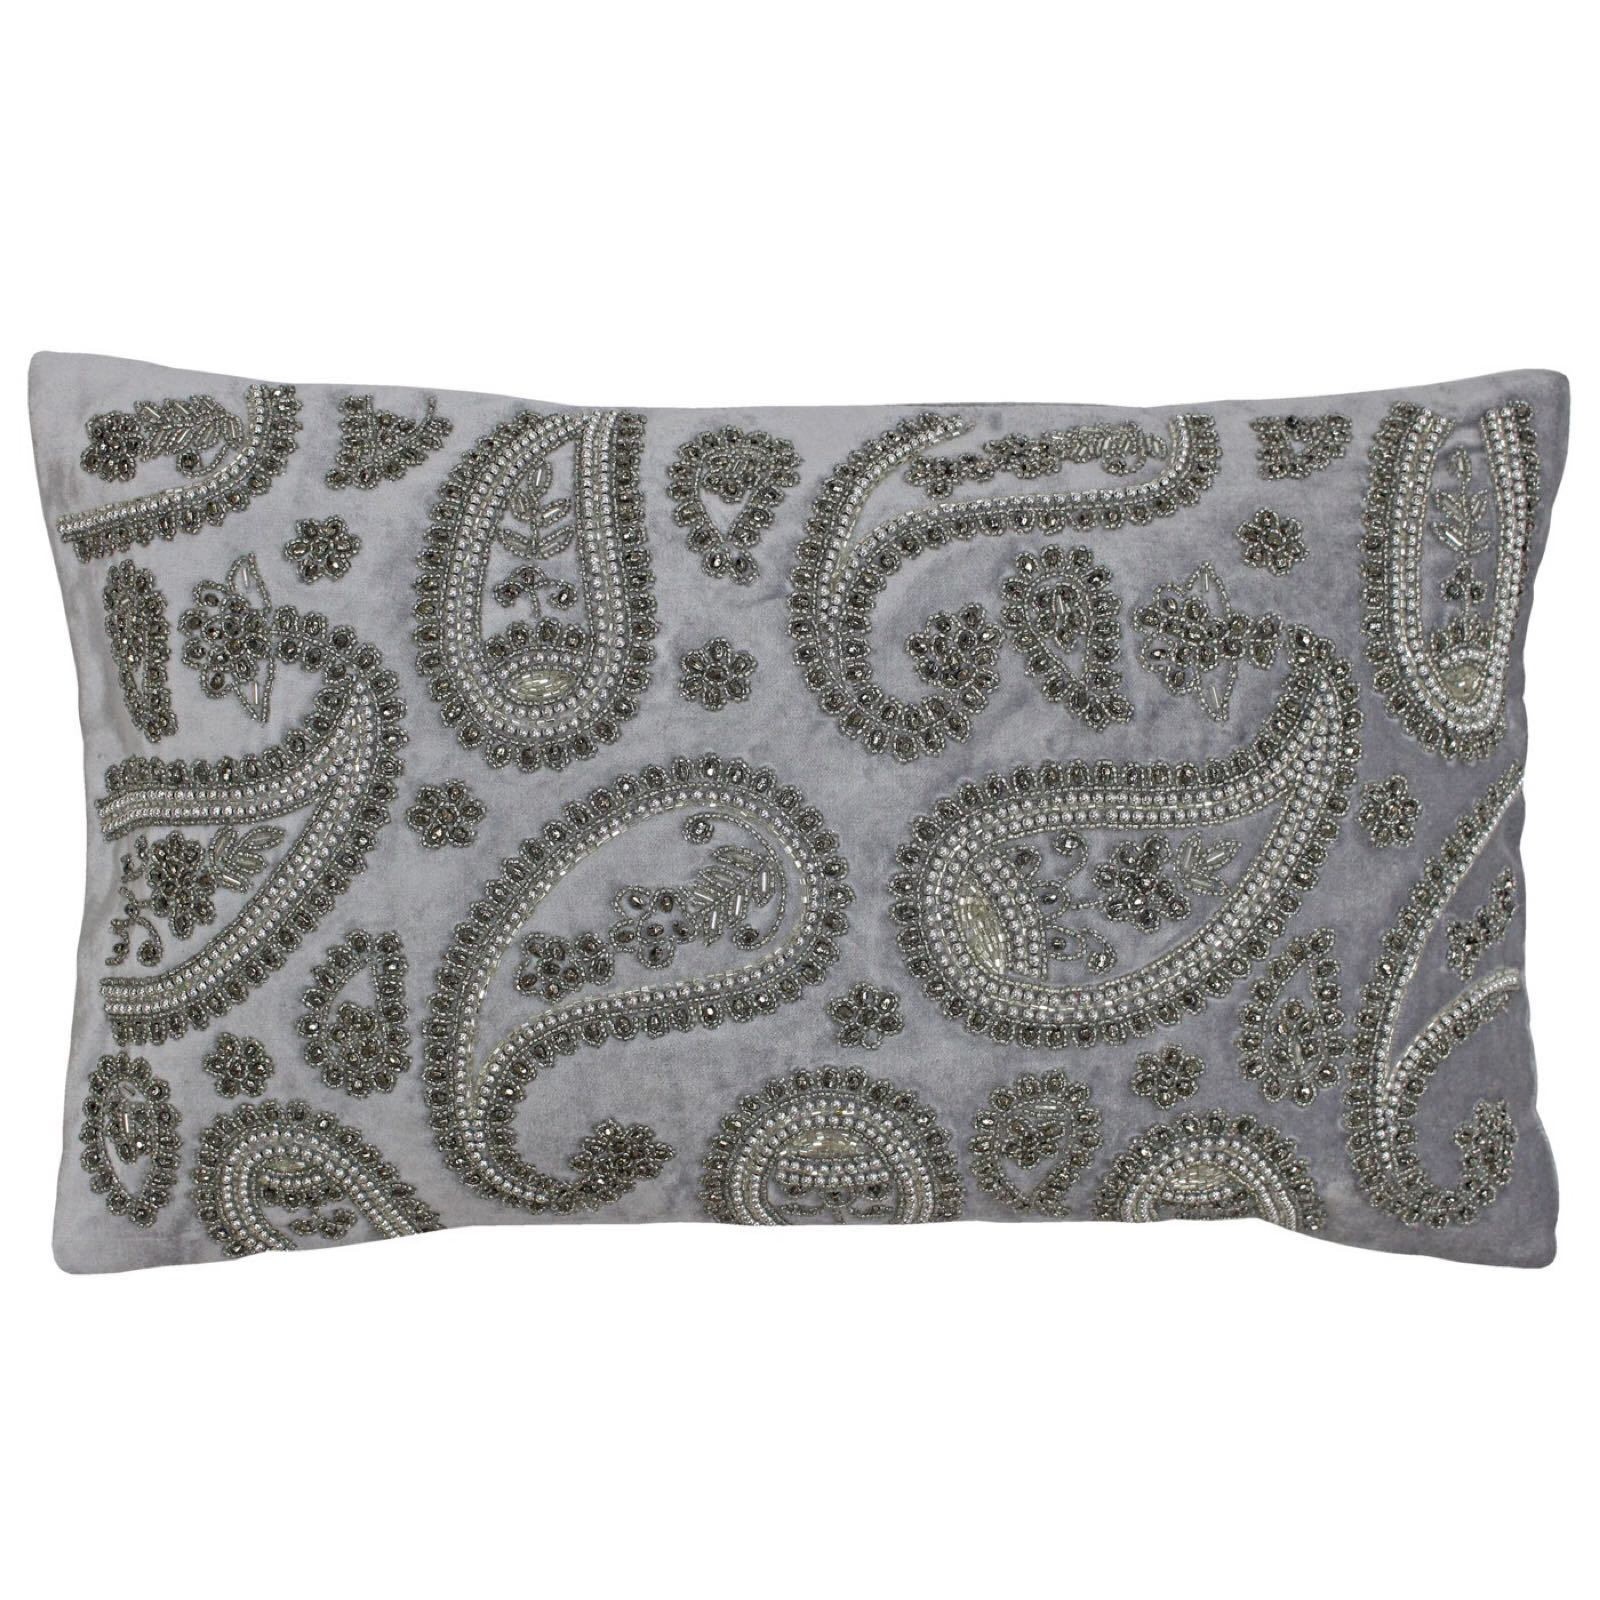 Cochin feather filled 30x50cm silver cushion  was £35